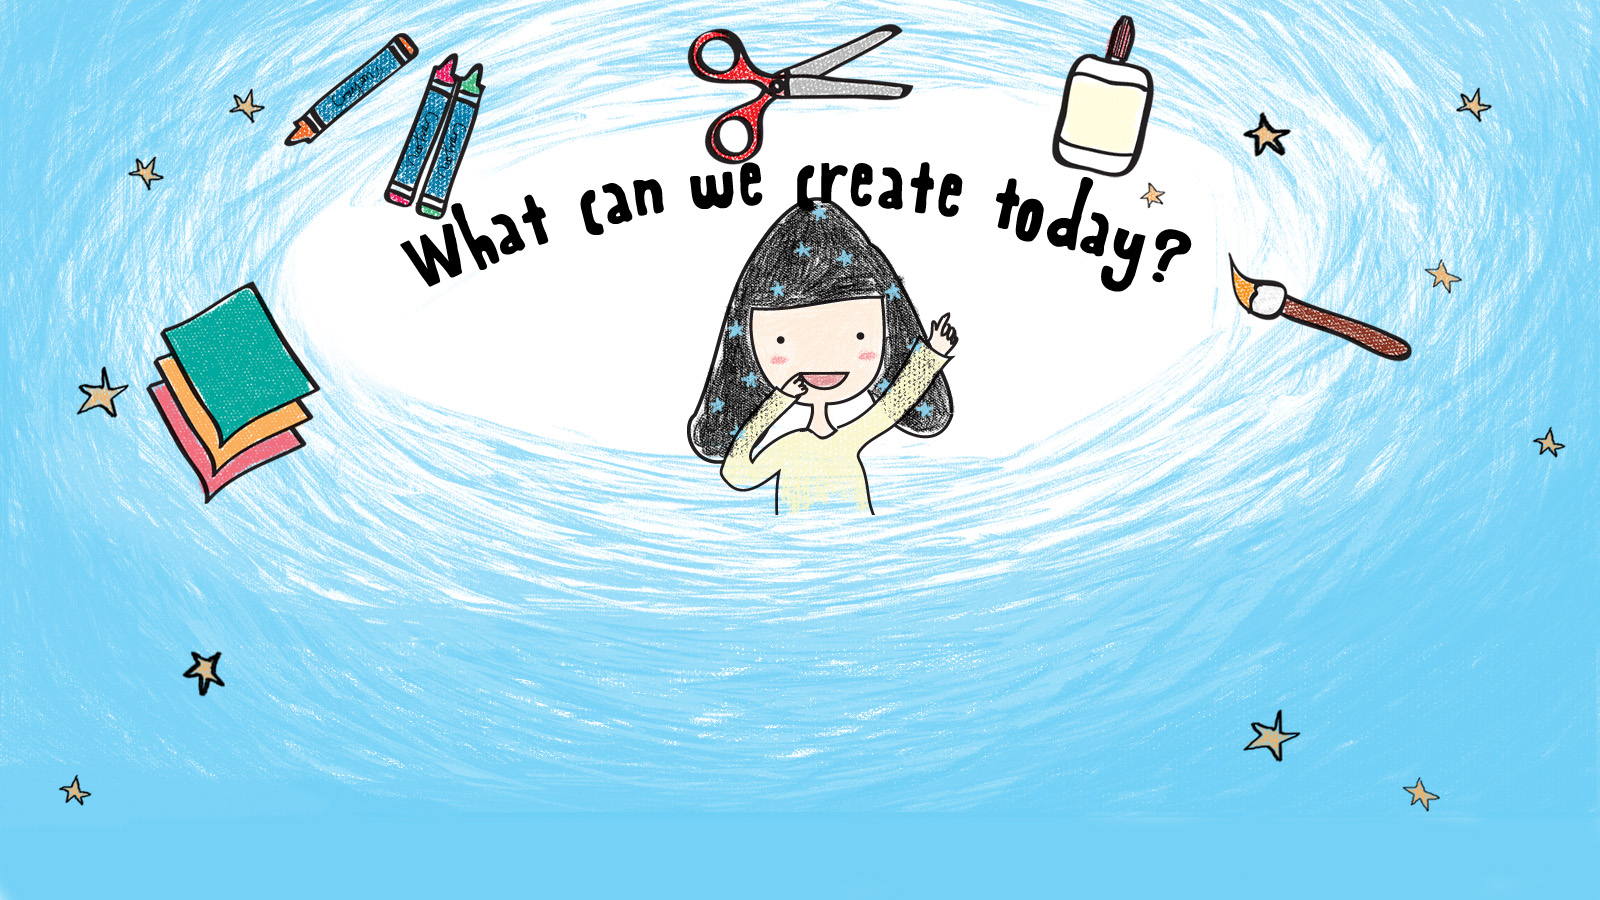 What can we create today ?